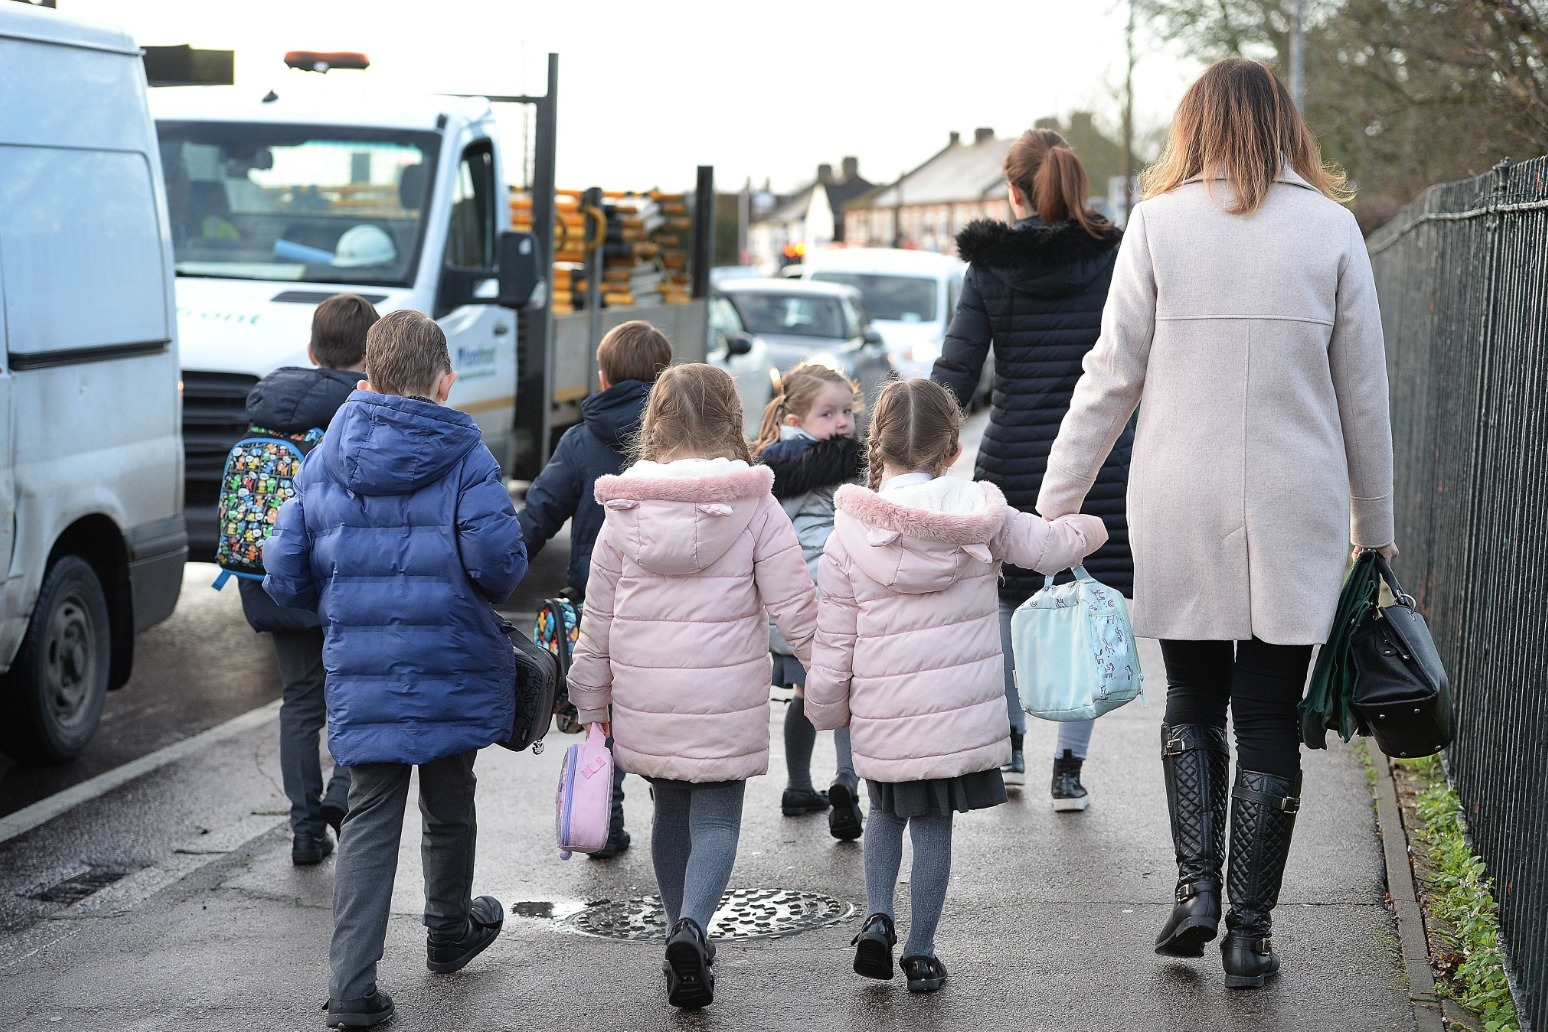 Behaviour issues and family problems rise among children in poverty – report